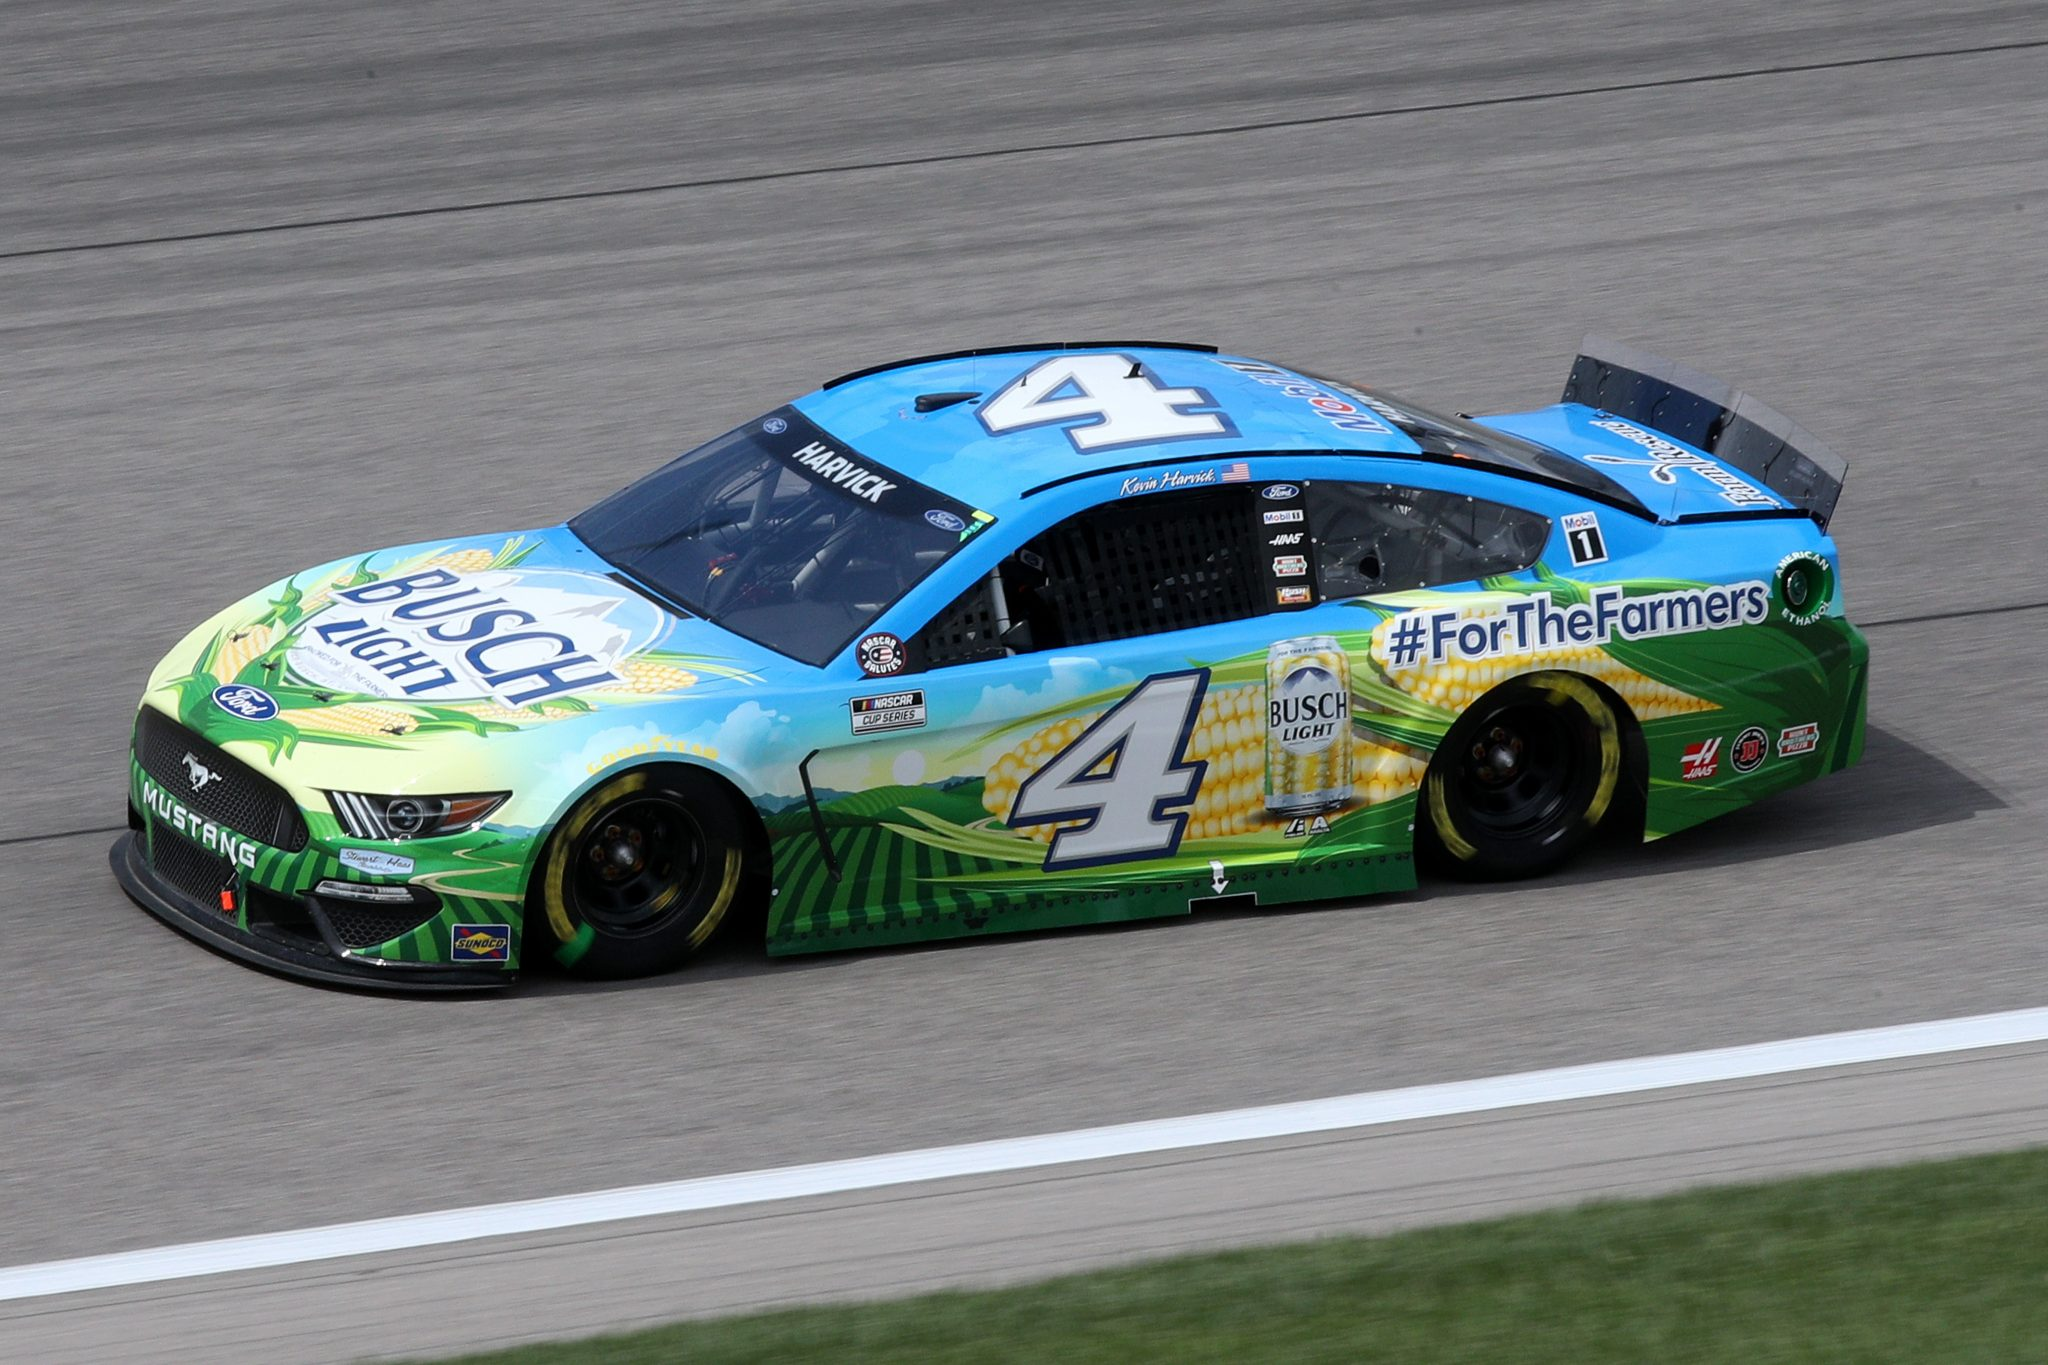 KANSAS CITY, KANSAS - MAY 02: Kevin Harvick, driver of the #4 Busch Light For The Farmers Ford, drives during the NASCAR Cup Series Buschy McBusch Race 400 at Kansas Speedway on May 02, 2021 in Kansas City, Kansas. (Photo by Sean Gardner/Getty Images) | Getty Images